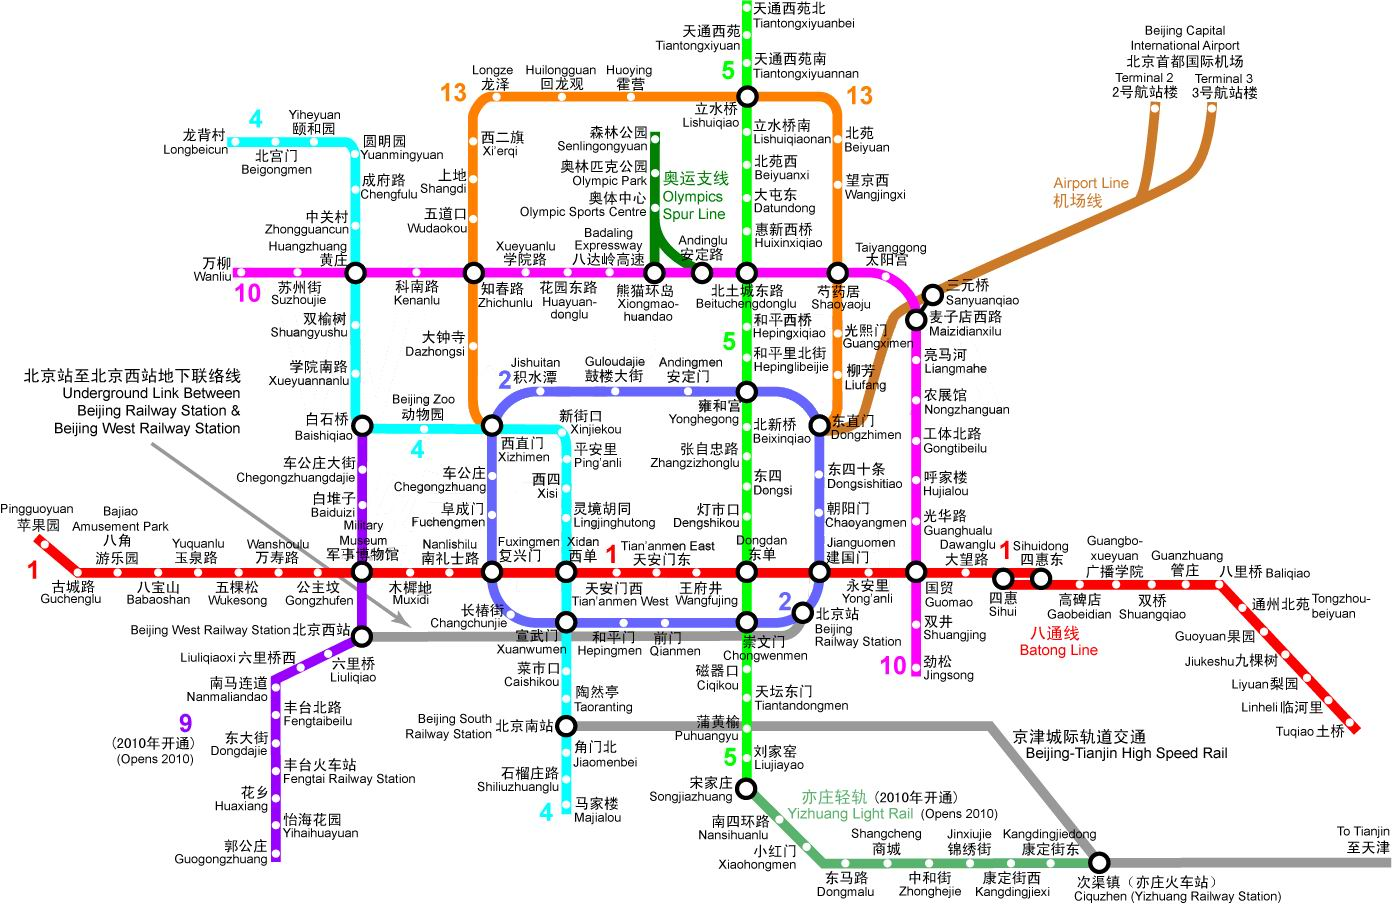 The Beijing Subway system does connect some of the major tourist destinations such as Tiananmen Square/Forbidden City, Wangfujing, the Lama Temple, the airport, the train station and the Olympic Park.